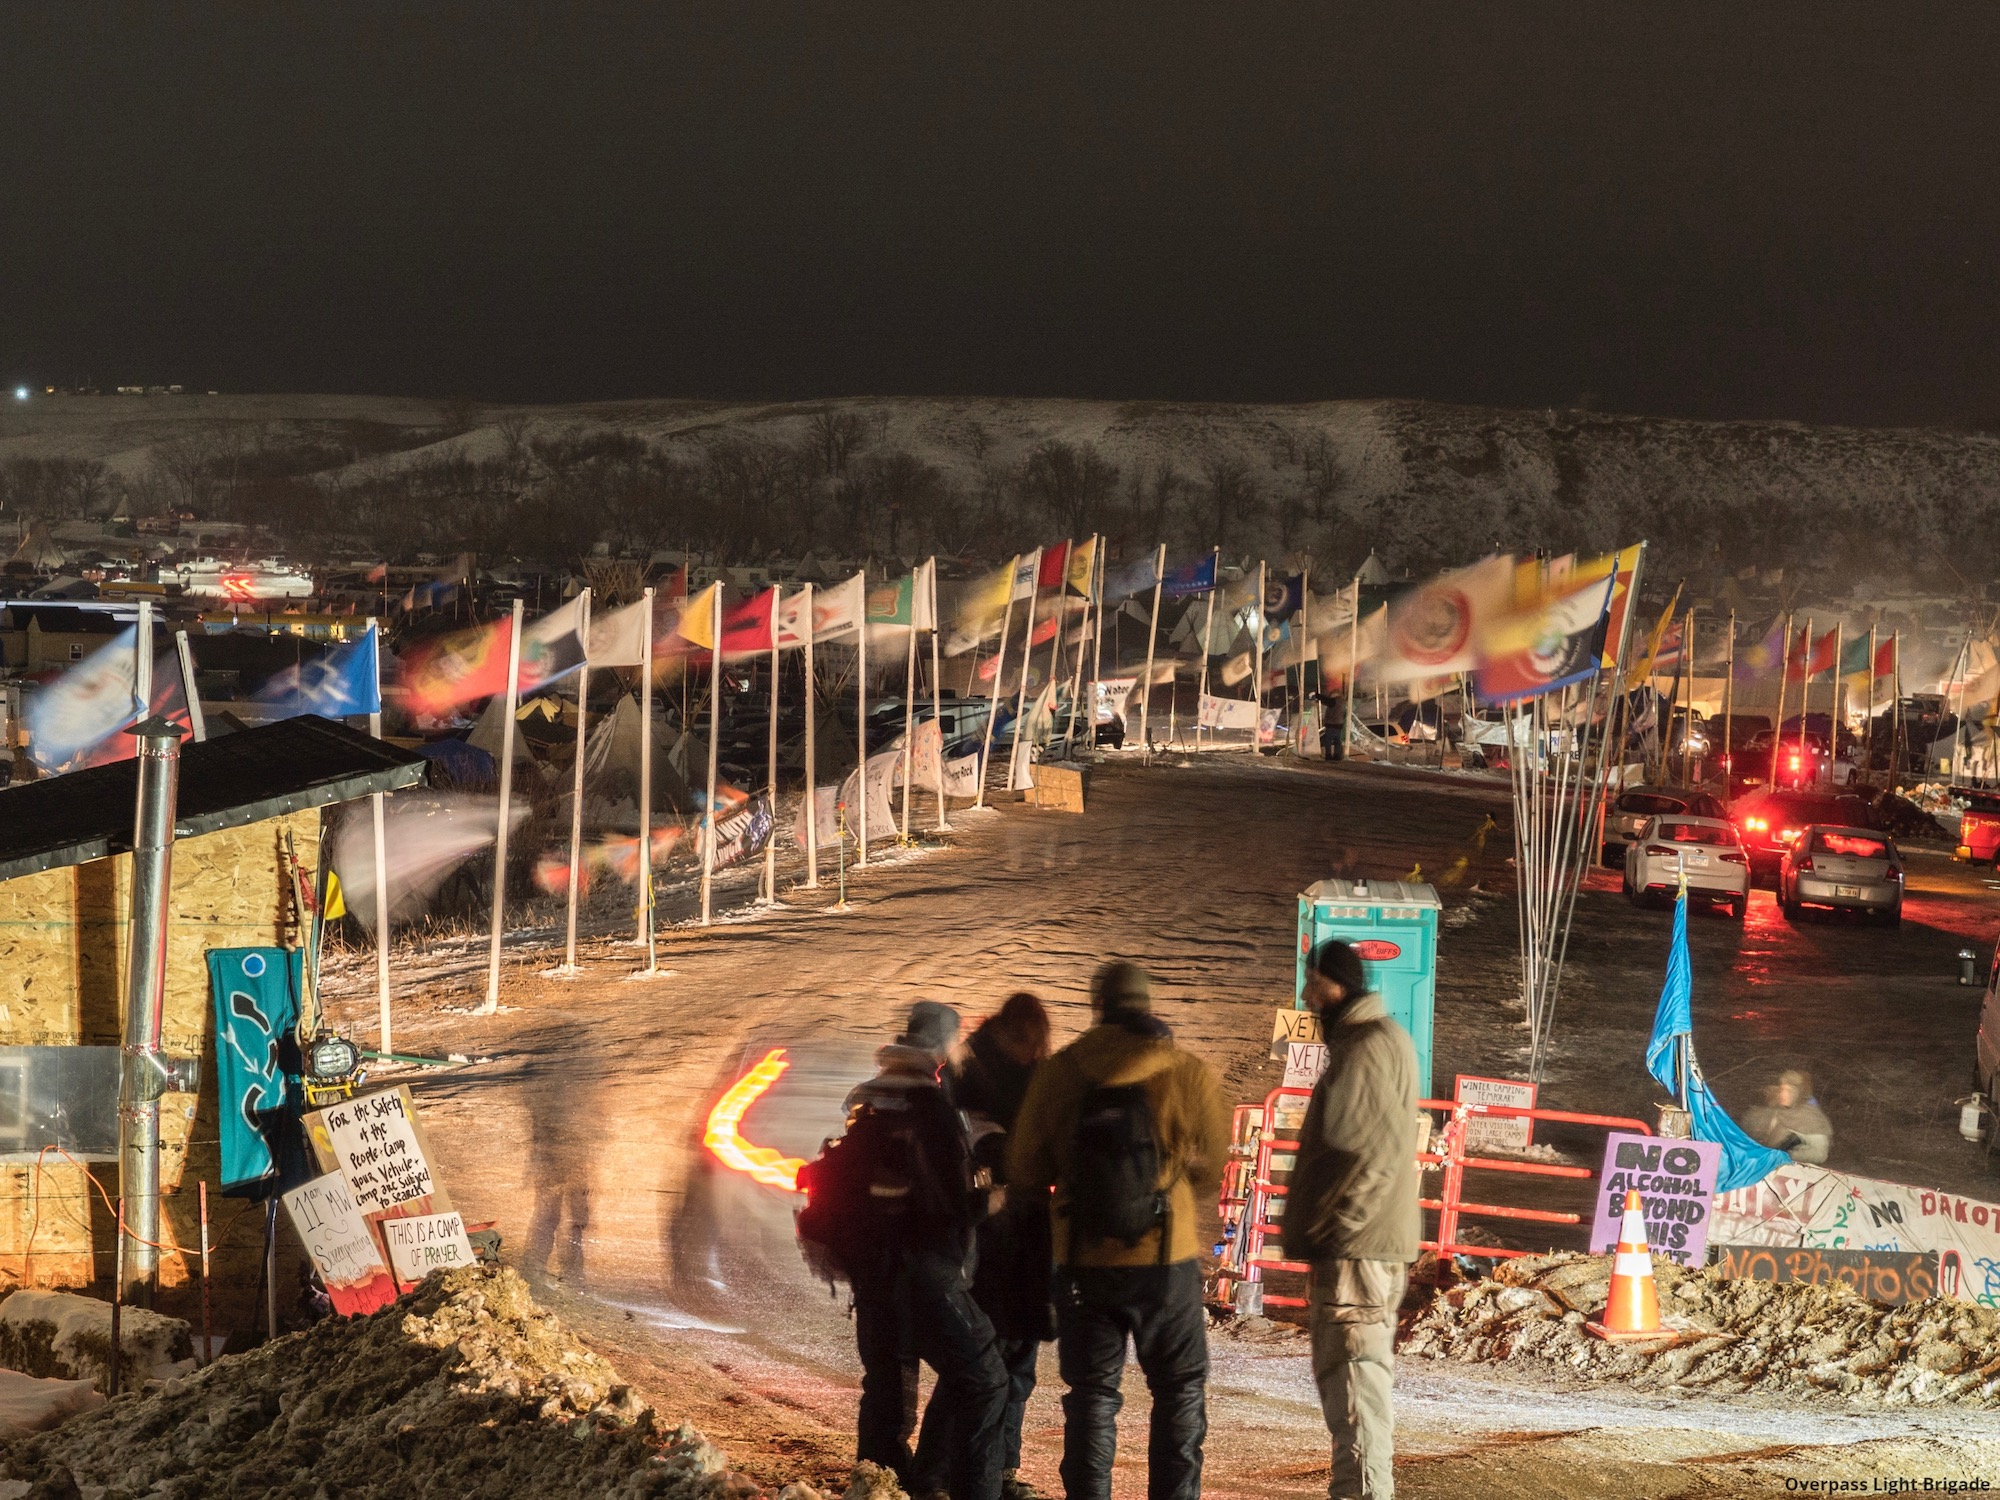 Native reporter Jenni Monet wins award for work at Standing Rock